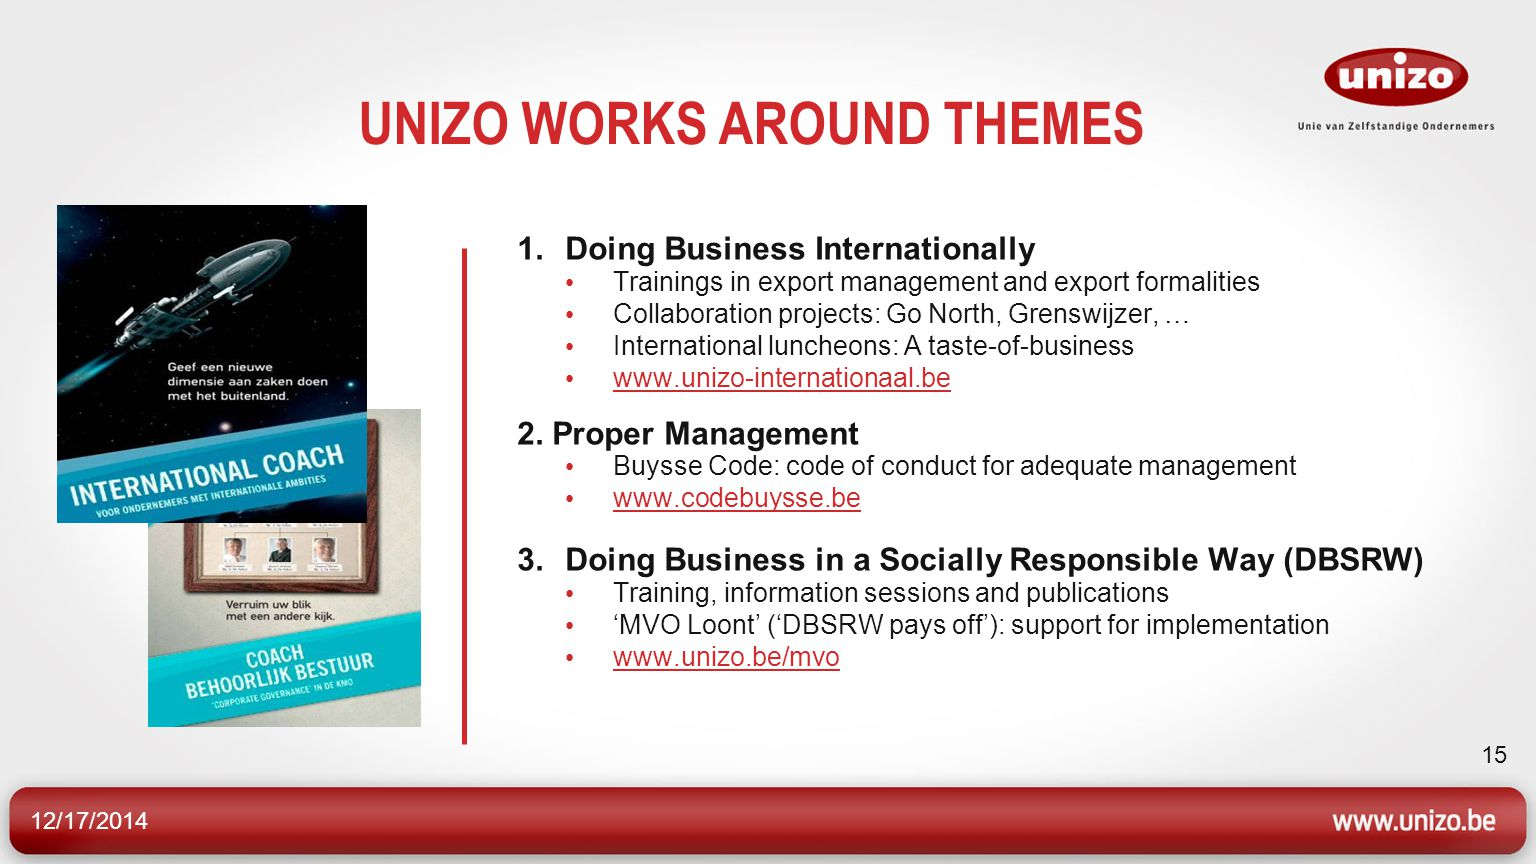 12/17/2014 15 UNIZO WORKS AROUND THEMES 1.Doing Business Internationally Trainings in export management and export formalities Collaboration projects: Go North, Grenswijzer, … International luncheons: A taste-of-business www.unizo-internationaal.be 2.